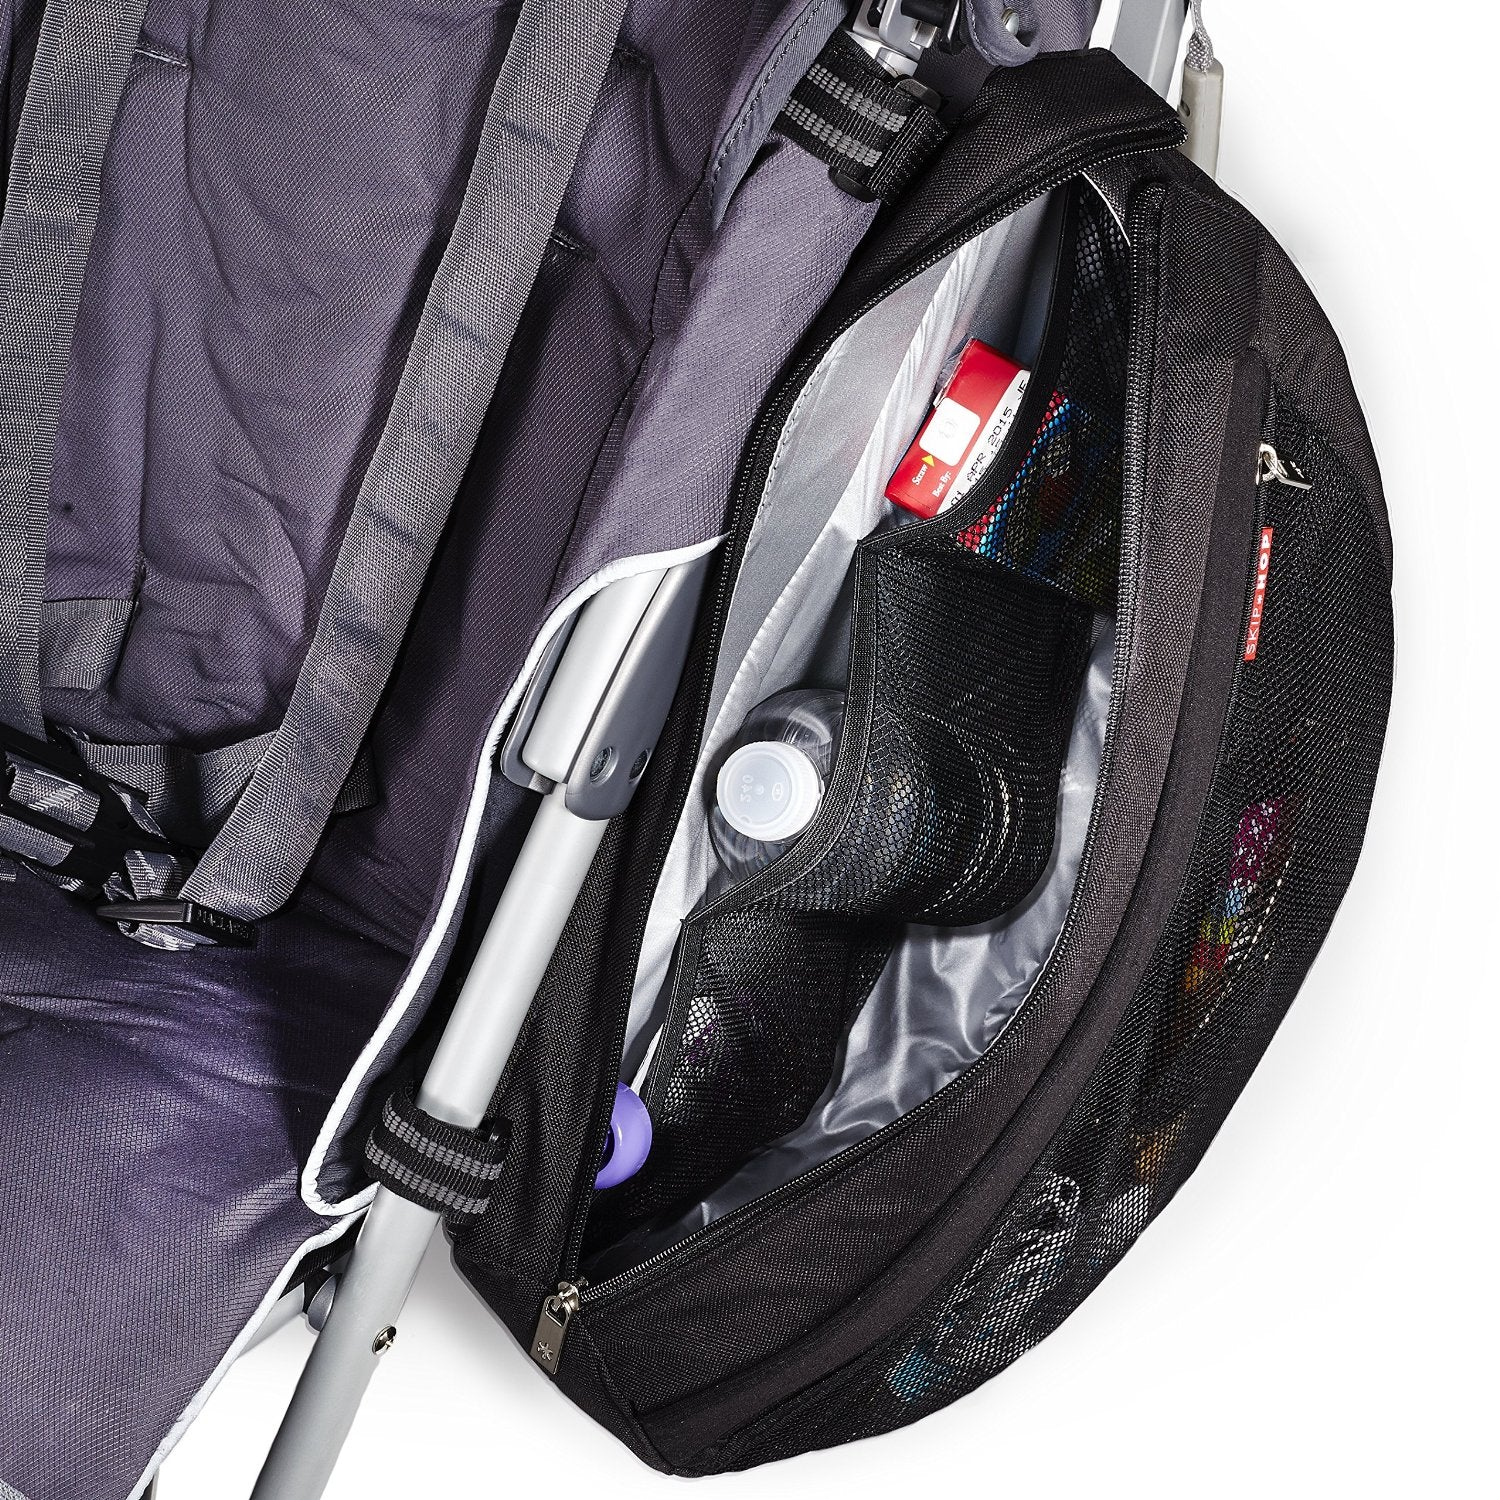 9 Most Useful Stroller Pram Accessories Available in India \u2013 The Gbabe